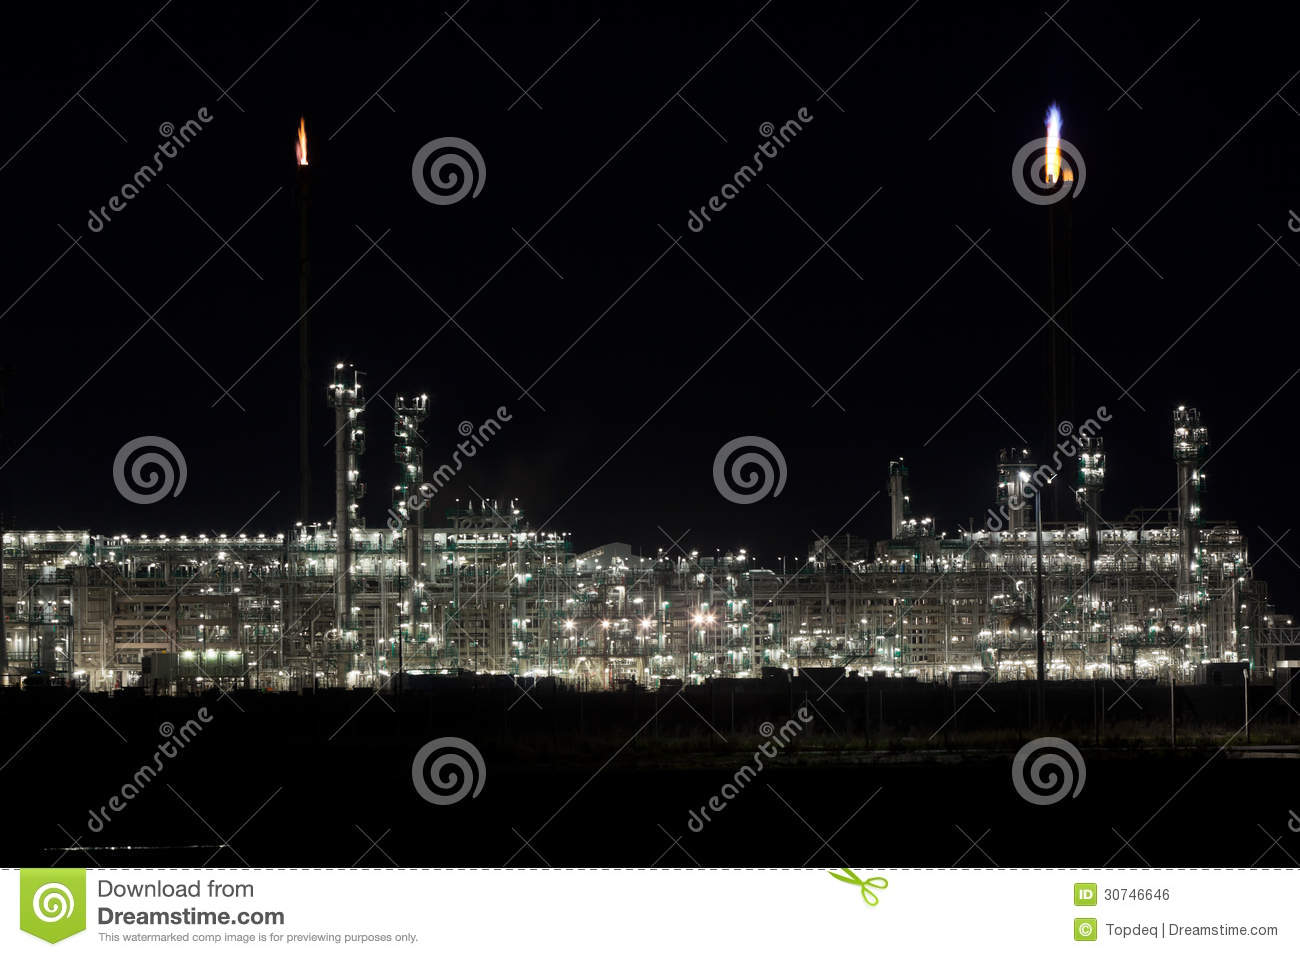 night-view-oil-refinery-plant-horizontal